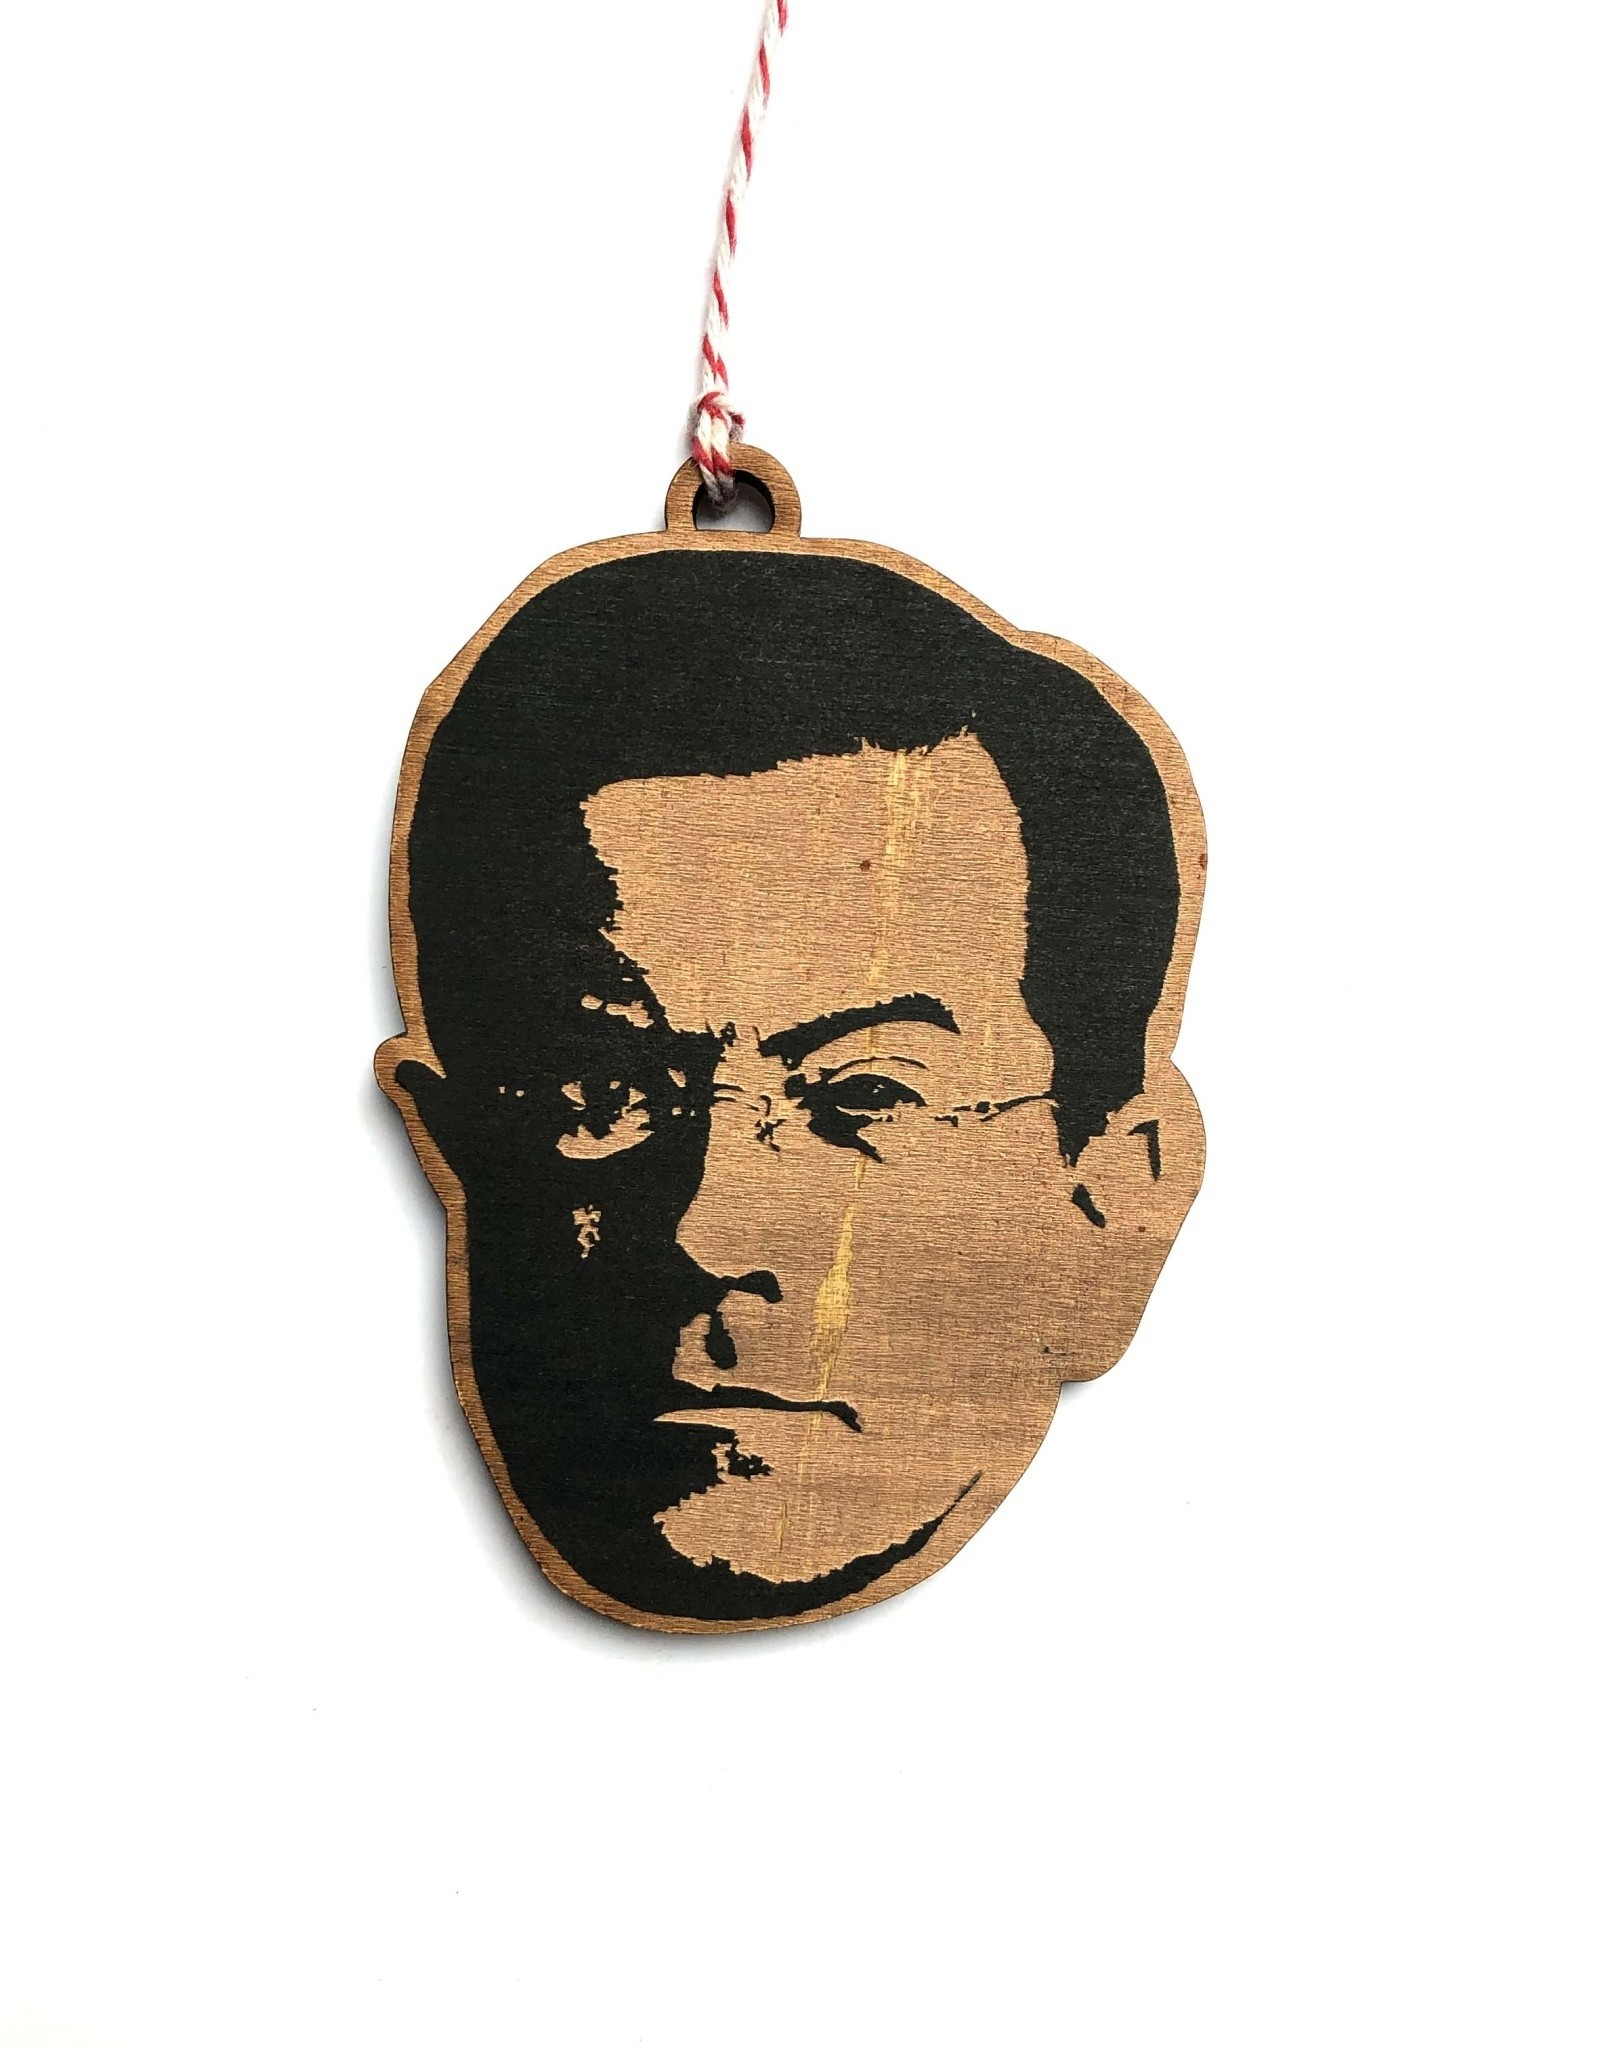 Stephen Colbert Wooden Ornament